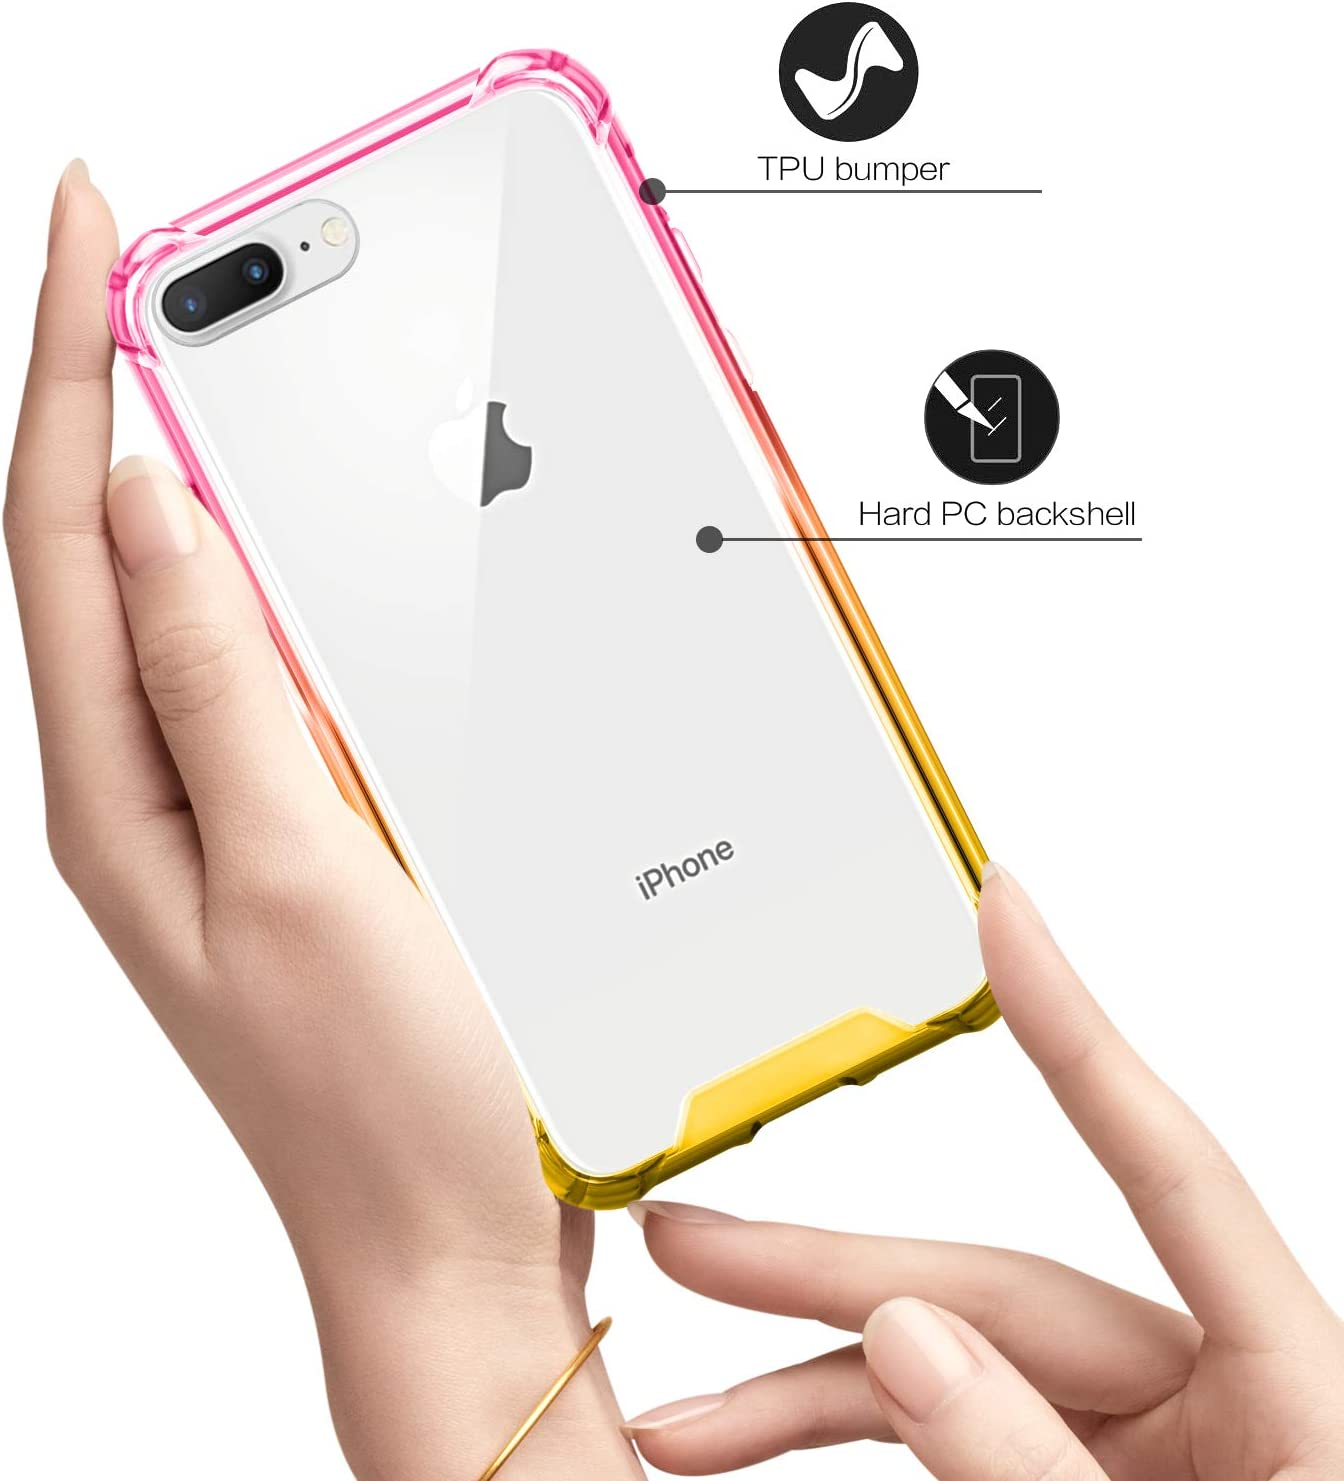 SALAWAT for iPhone 7 Plus Case, Clear iPhone 8 Plus Case Cute Anti Scratch Slim Phone Case Cover Reinforced TPU Bumper Shock Absorption Protective Case for iPhone 7/8 Plus (Pink Gold)